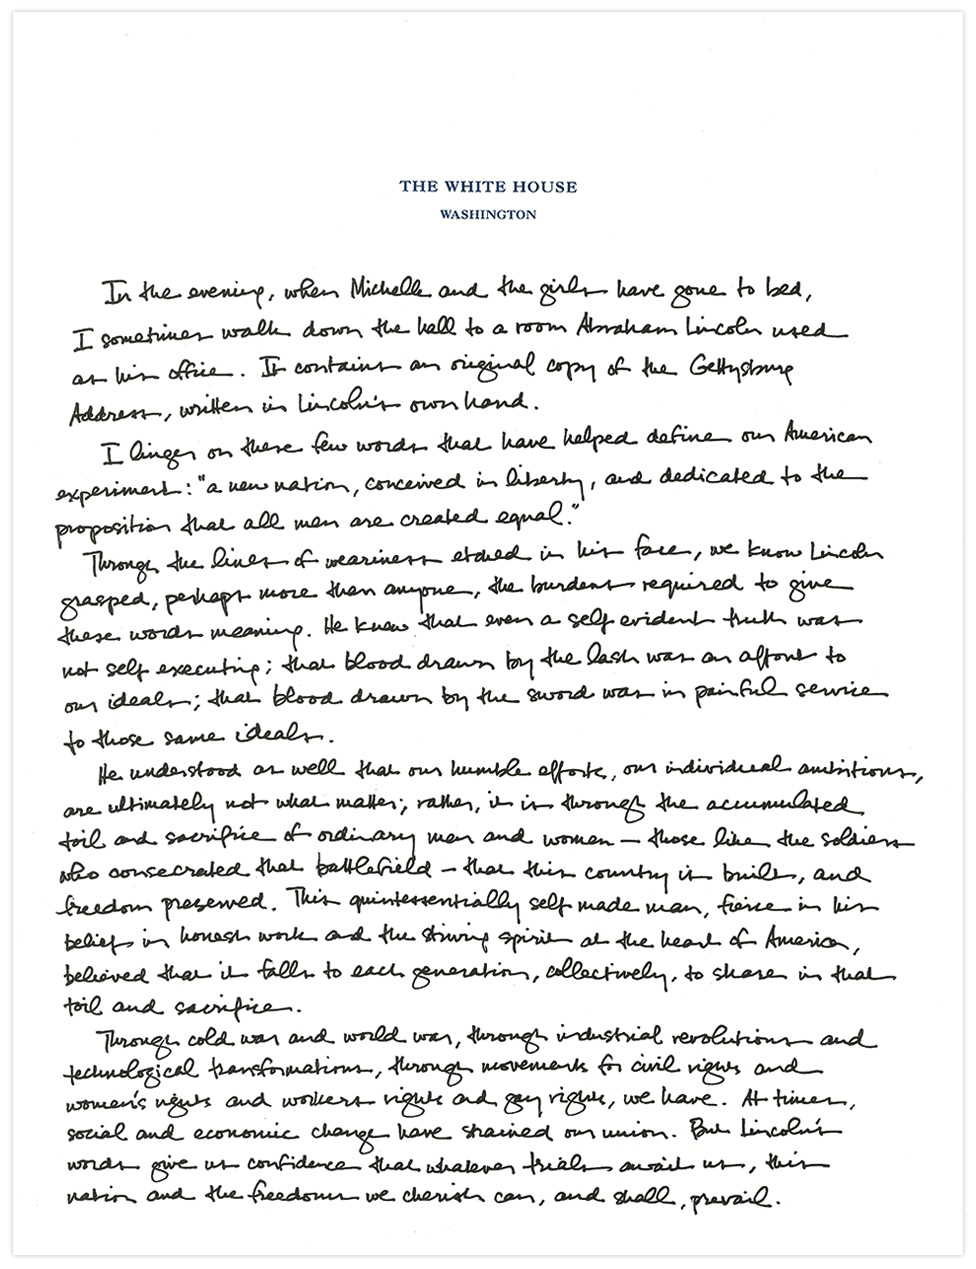 president obama s handwritten essay marking the th anniversary president obama s handwritten essay marking the 150th anniversary of the gettysburg address